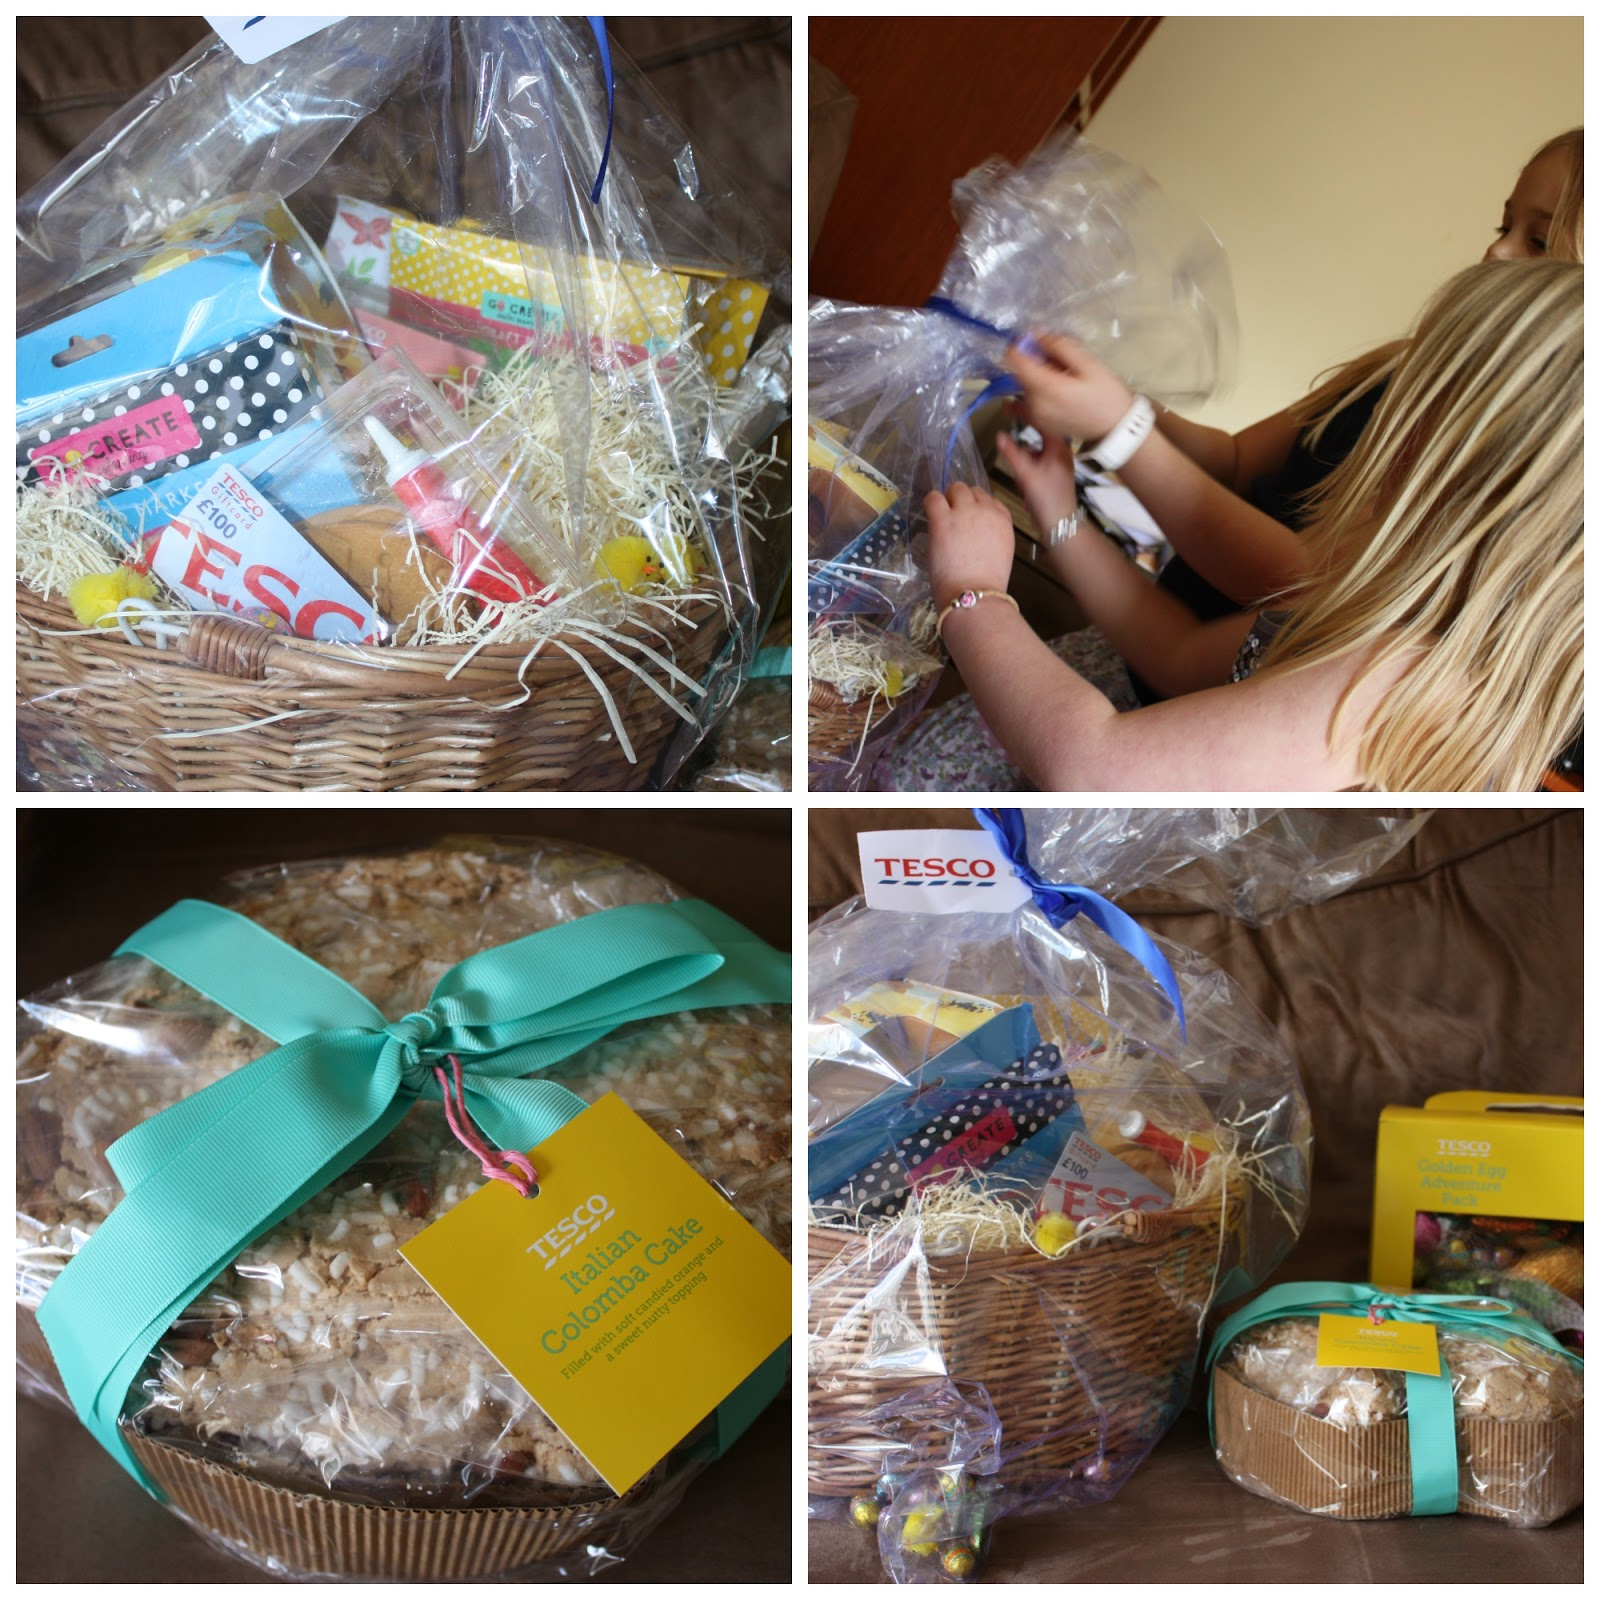 Mellow mummy tescoeaster egg hunts easter crafts and a hamper were preparing for a nice family weekend for easter with lots of treats but also a traditional lamb roast and if the weather is kind to us a barbecue negle